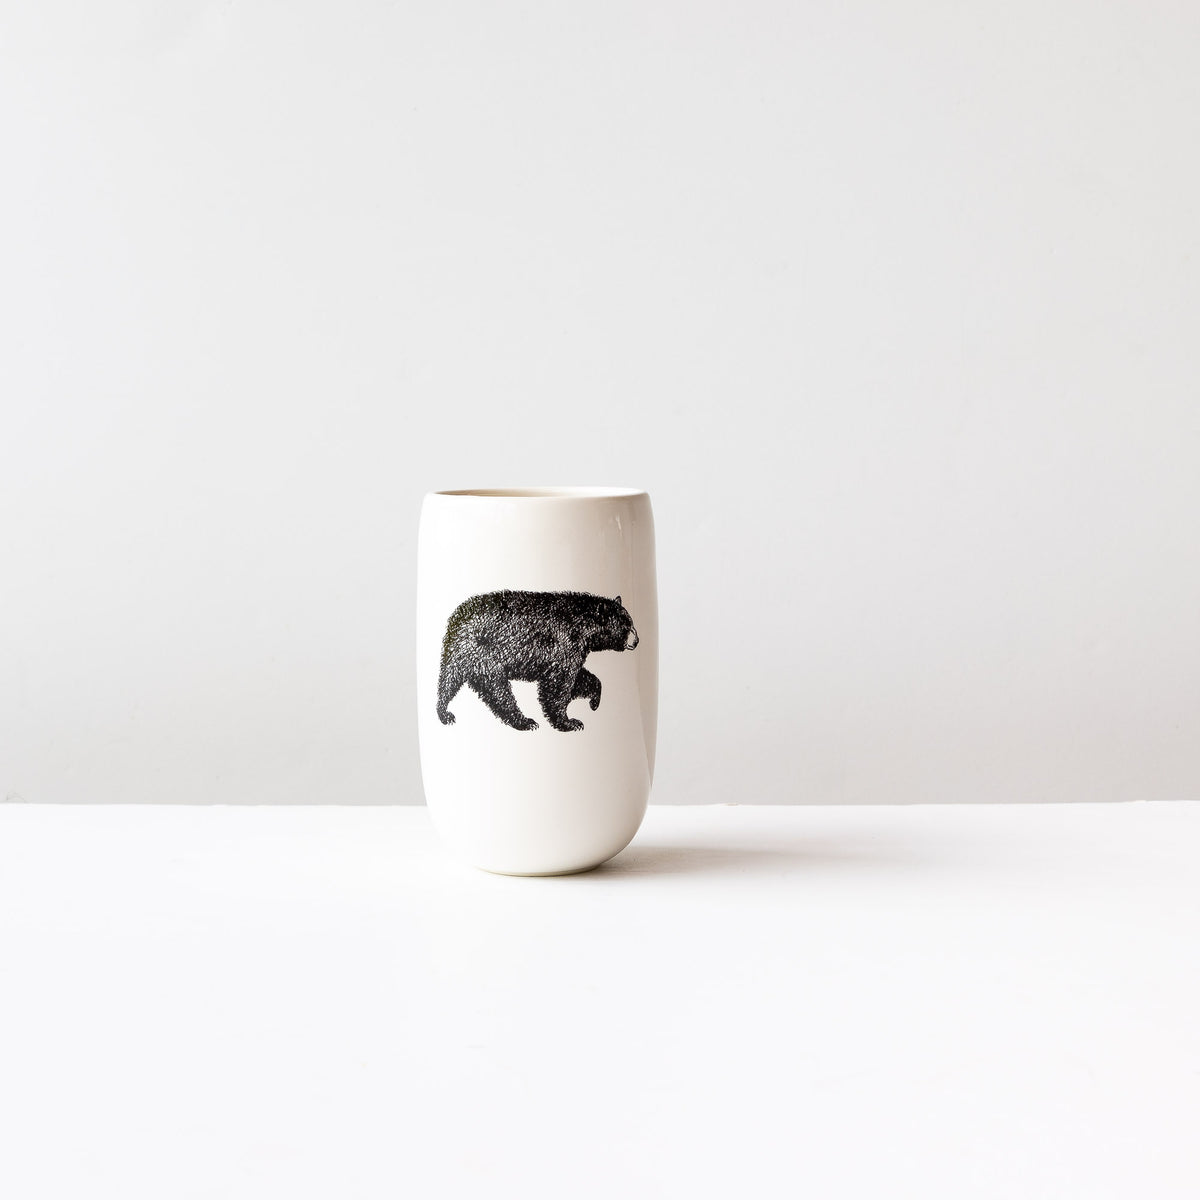 American Black Bear- Handmade Porcelain Beer Tumbler / Glass - Sold by Chic & Basta